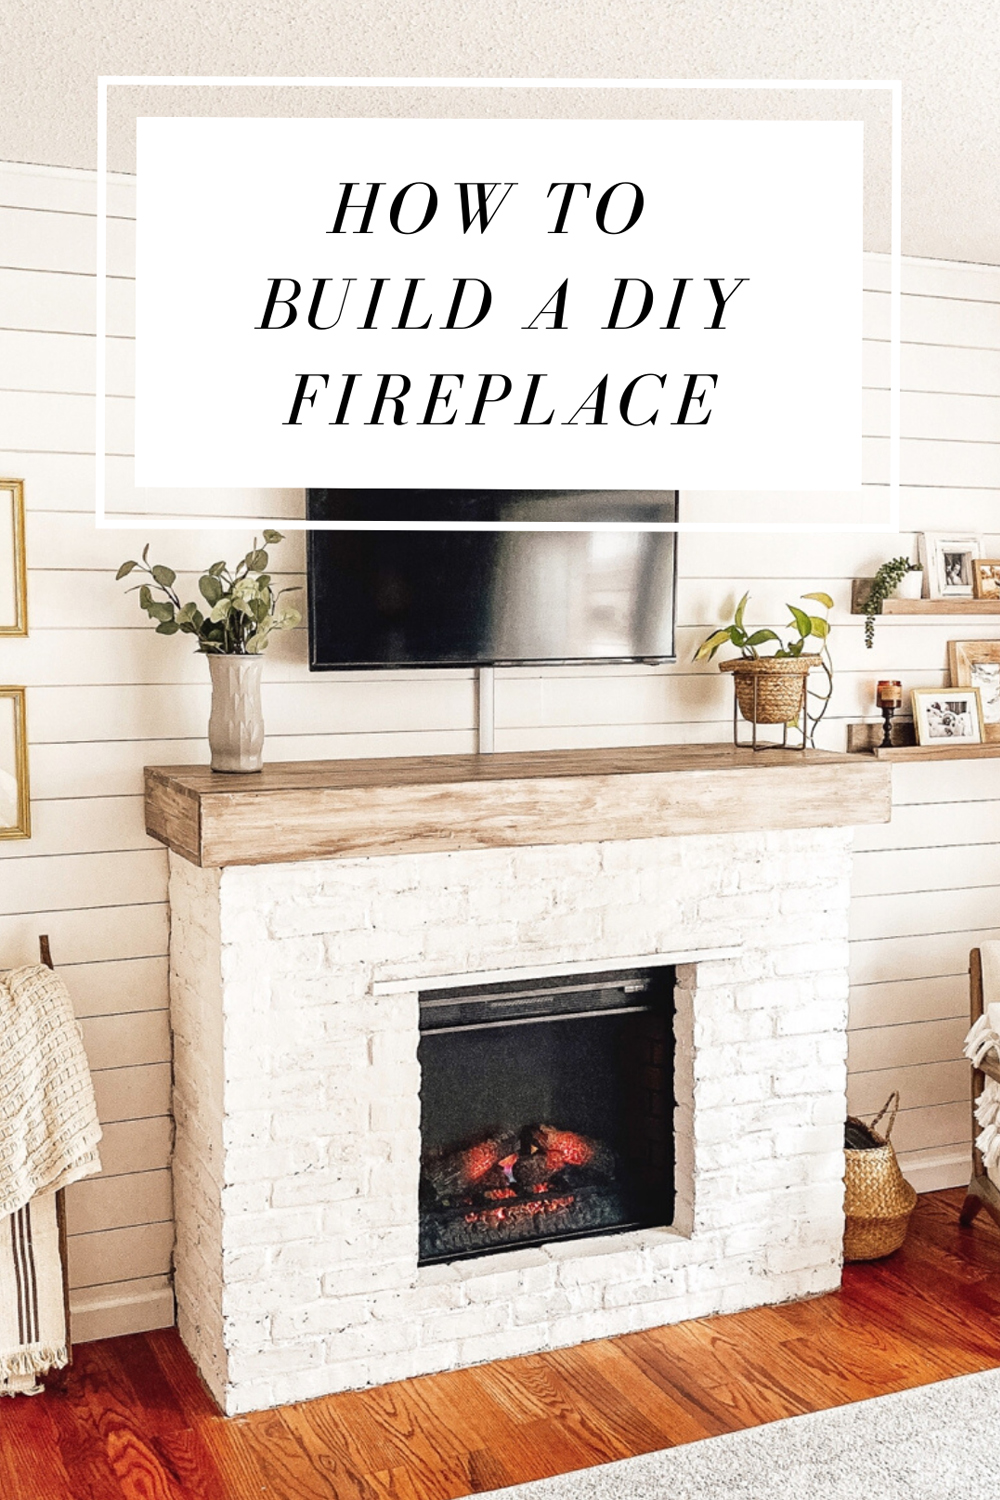 Diy Fireplace How We Built A Brick Fireplace Around An Electric Insert Faux Fireplace Electric Fire In 2020 Diy Fireplace Diy Fireplace Makeover Faux Fireplace